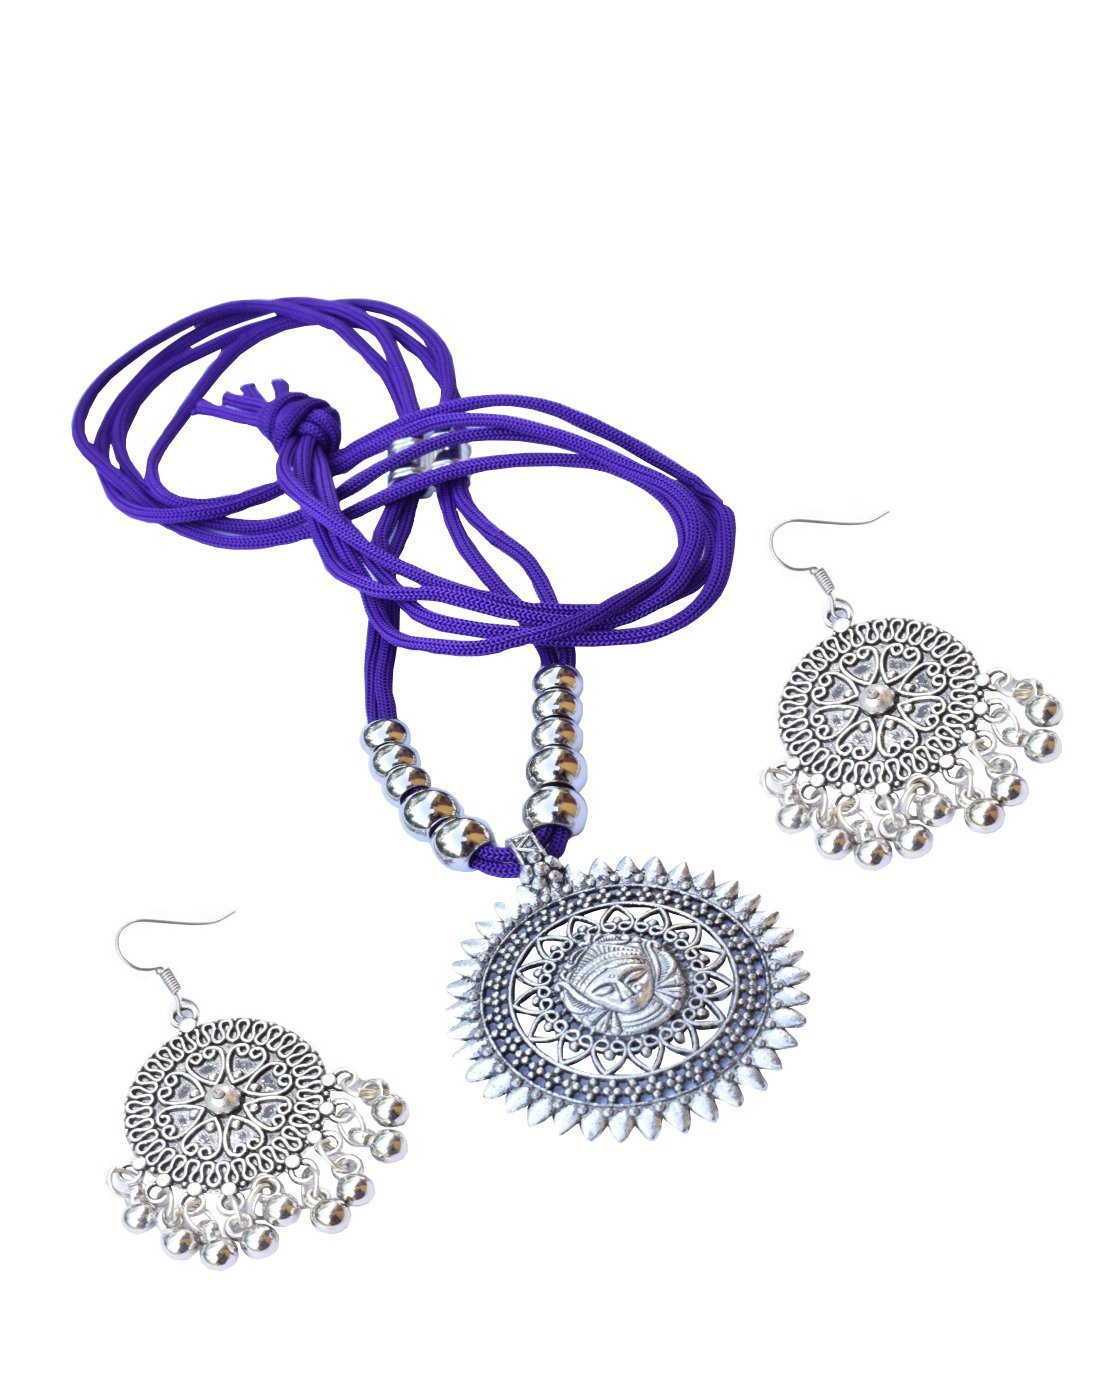 GiftPiper Oxidized Metal Threaded Necklace Set - Purple